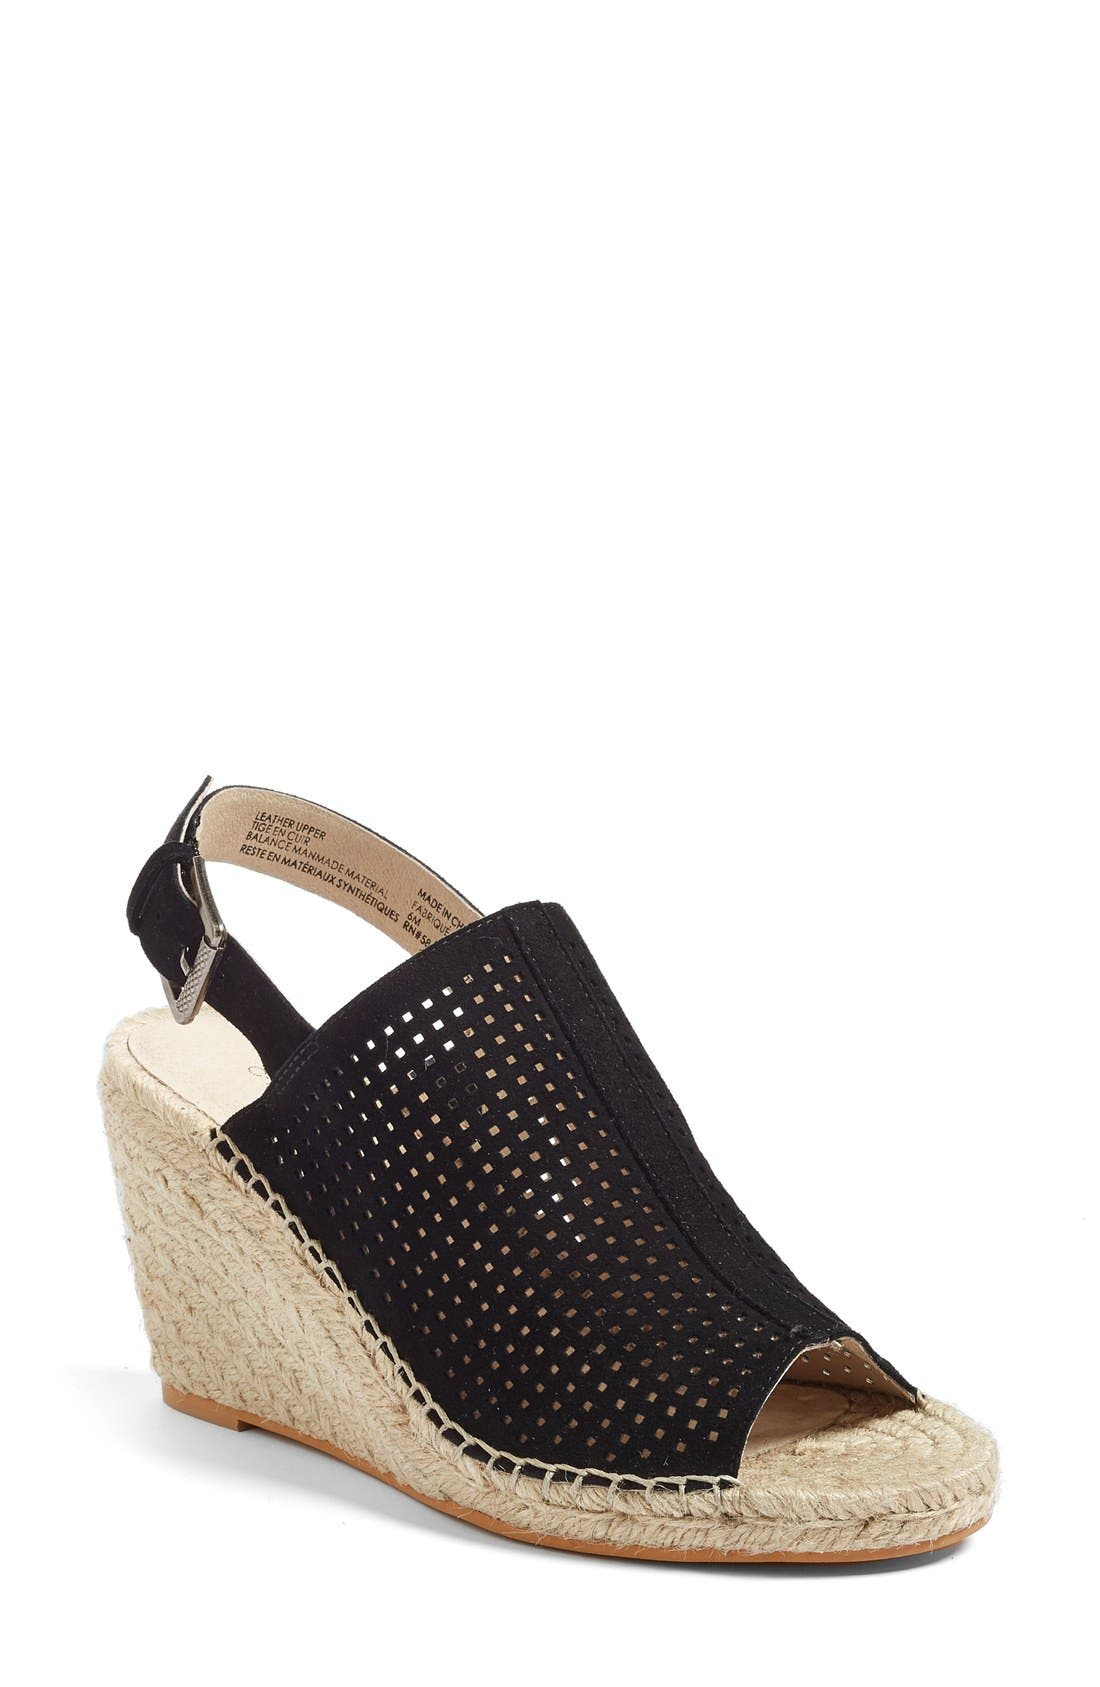 Sutton Slingback Sandal,                         Main,                         color, Black Perferated Kidsuede